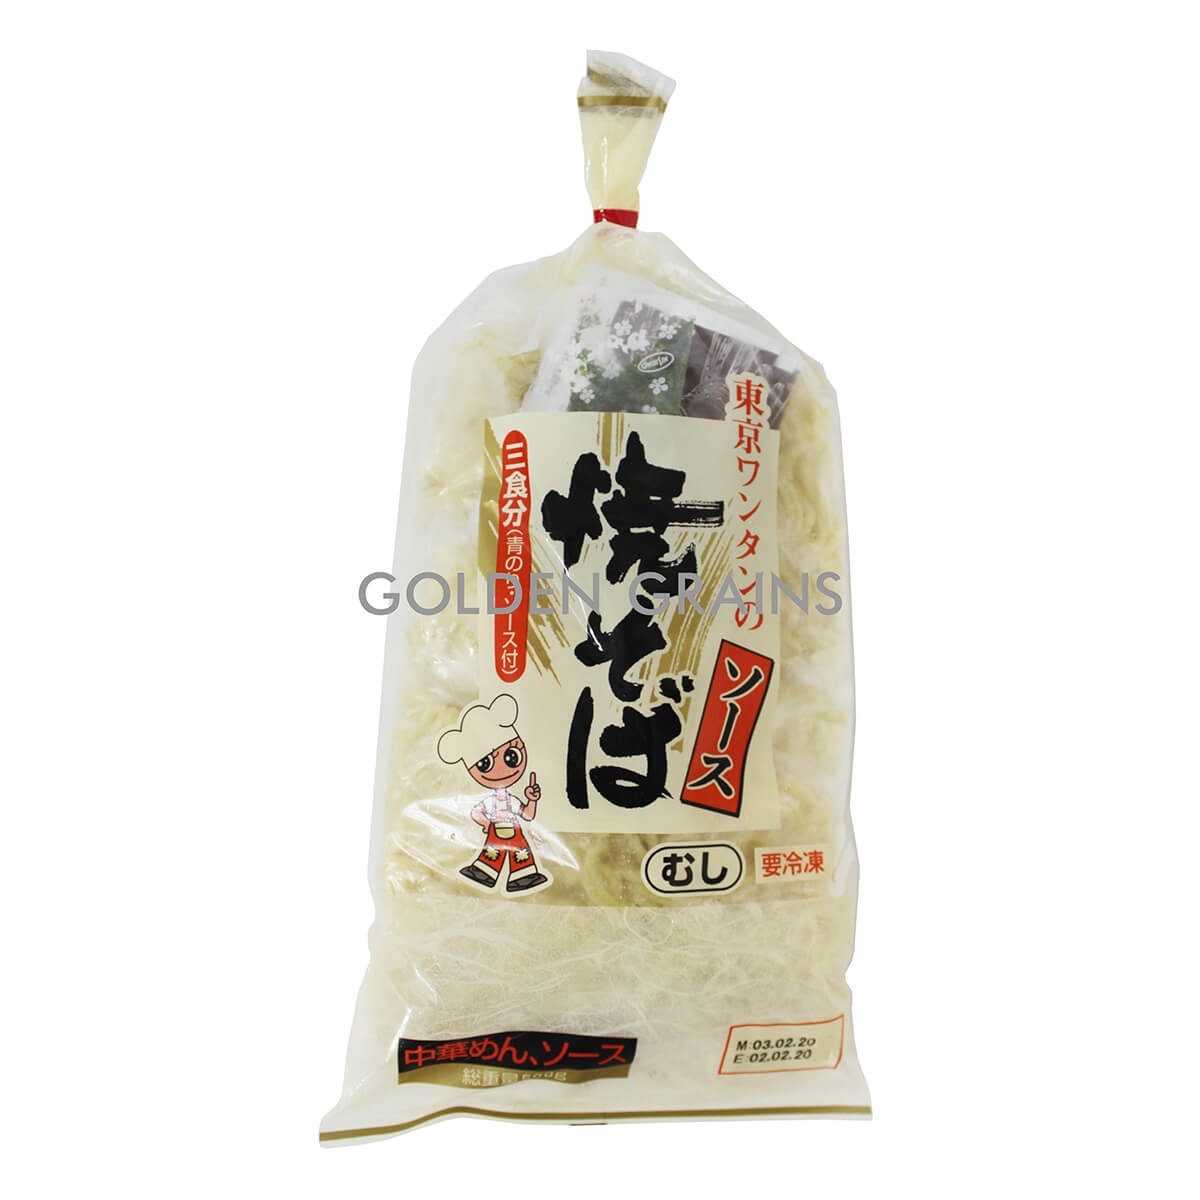 Golden Grains Tokyu - Yakisoba Noodles FRZ - 500G - Japan - Front.jpg